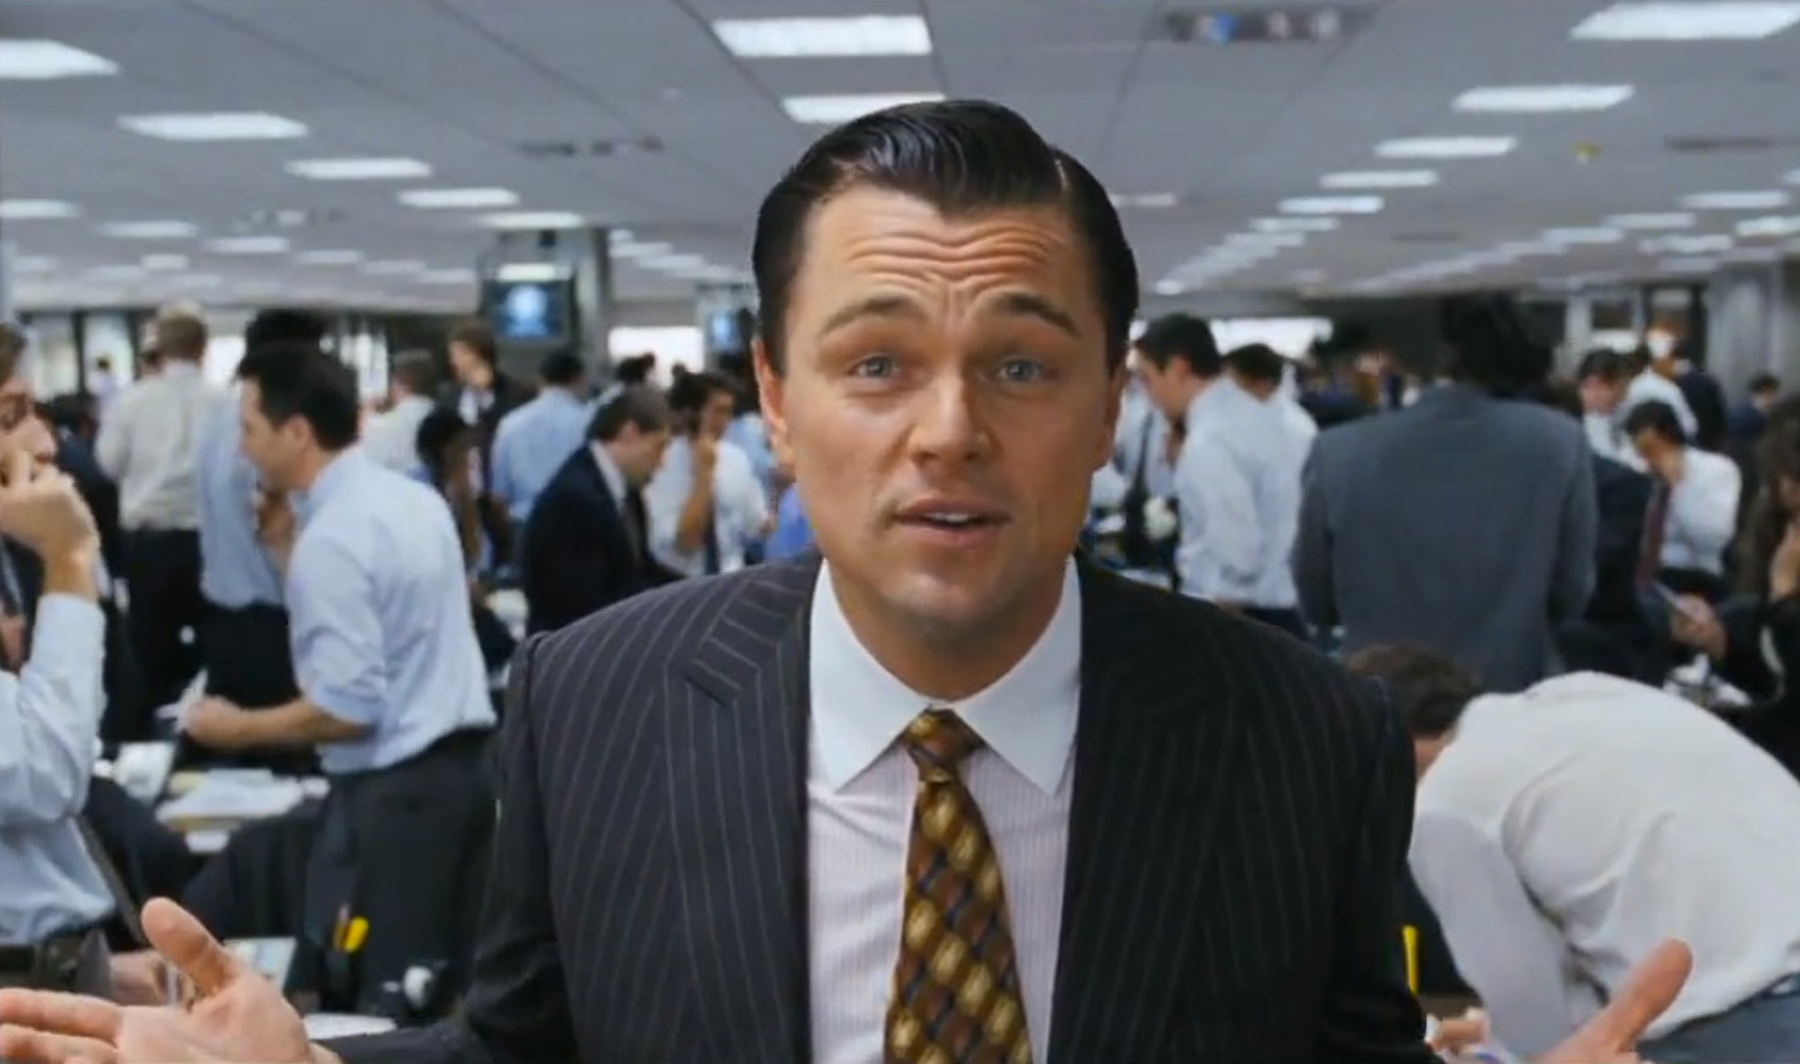 Can Leonardo DiCaprio Win an Oscar for Playing a Wall Street Scumbag?